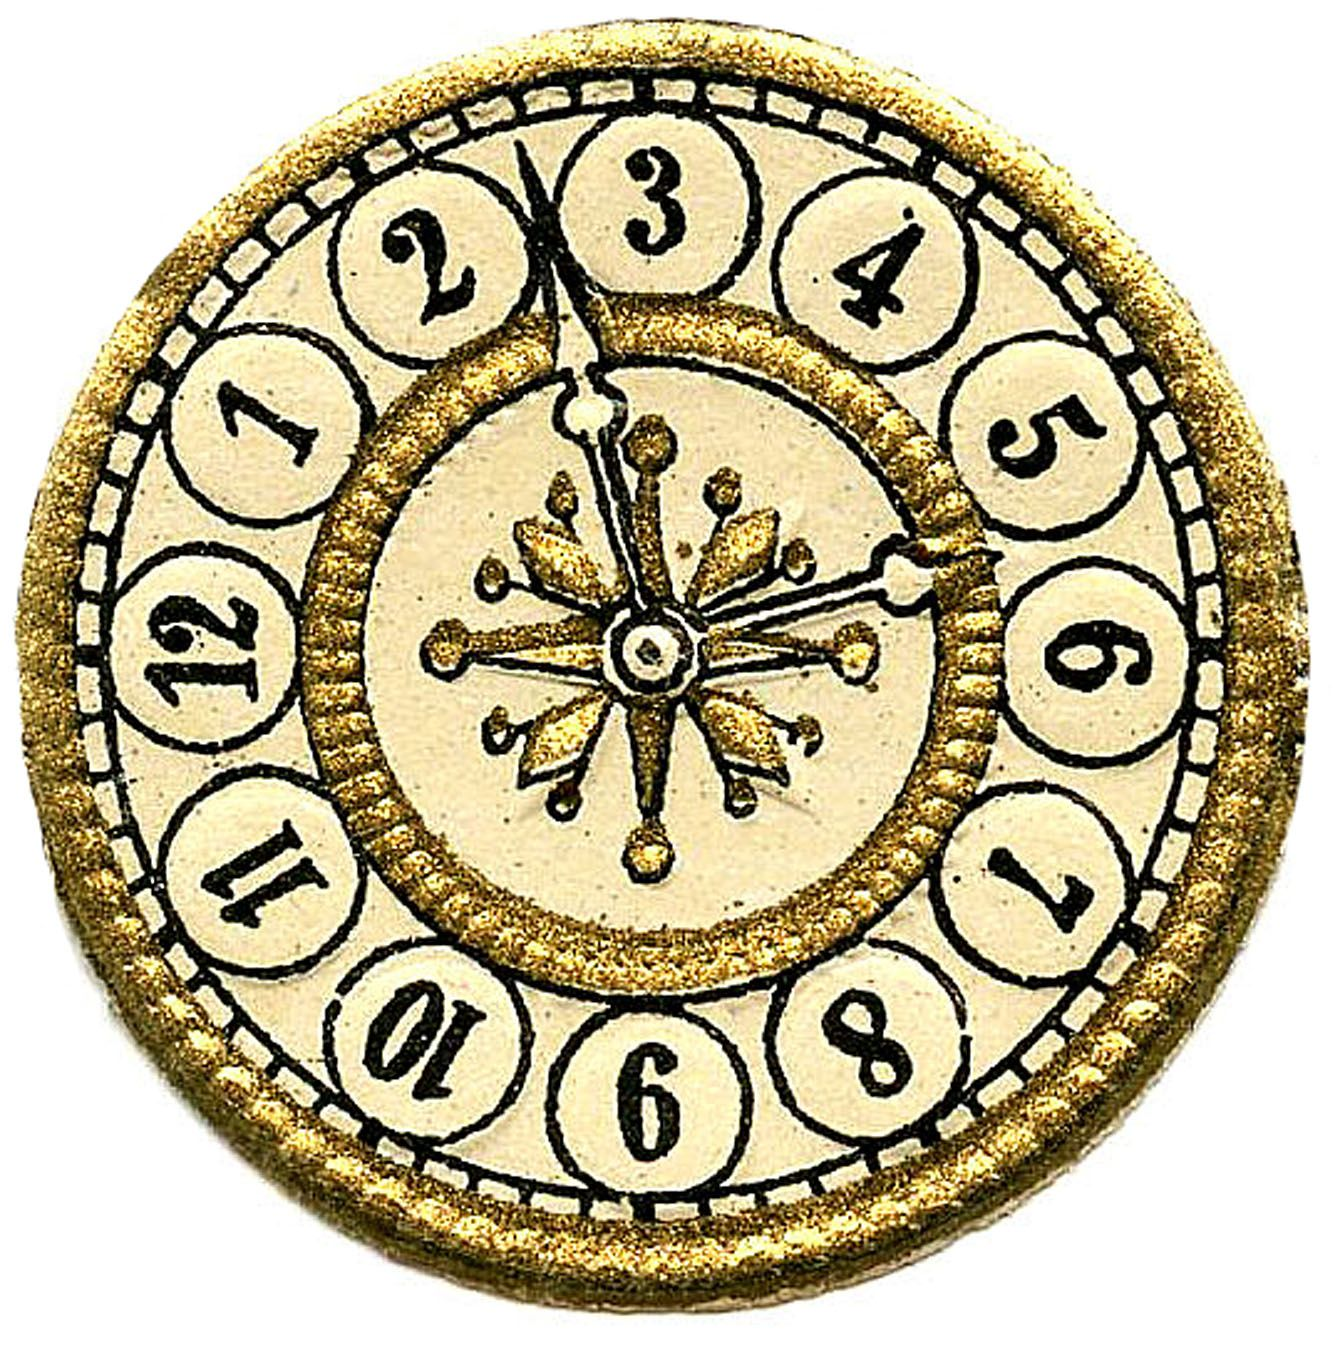 11 Clock Face Images - Print Your Own! | Victorian clocks ...